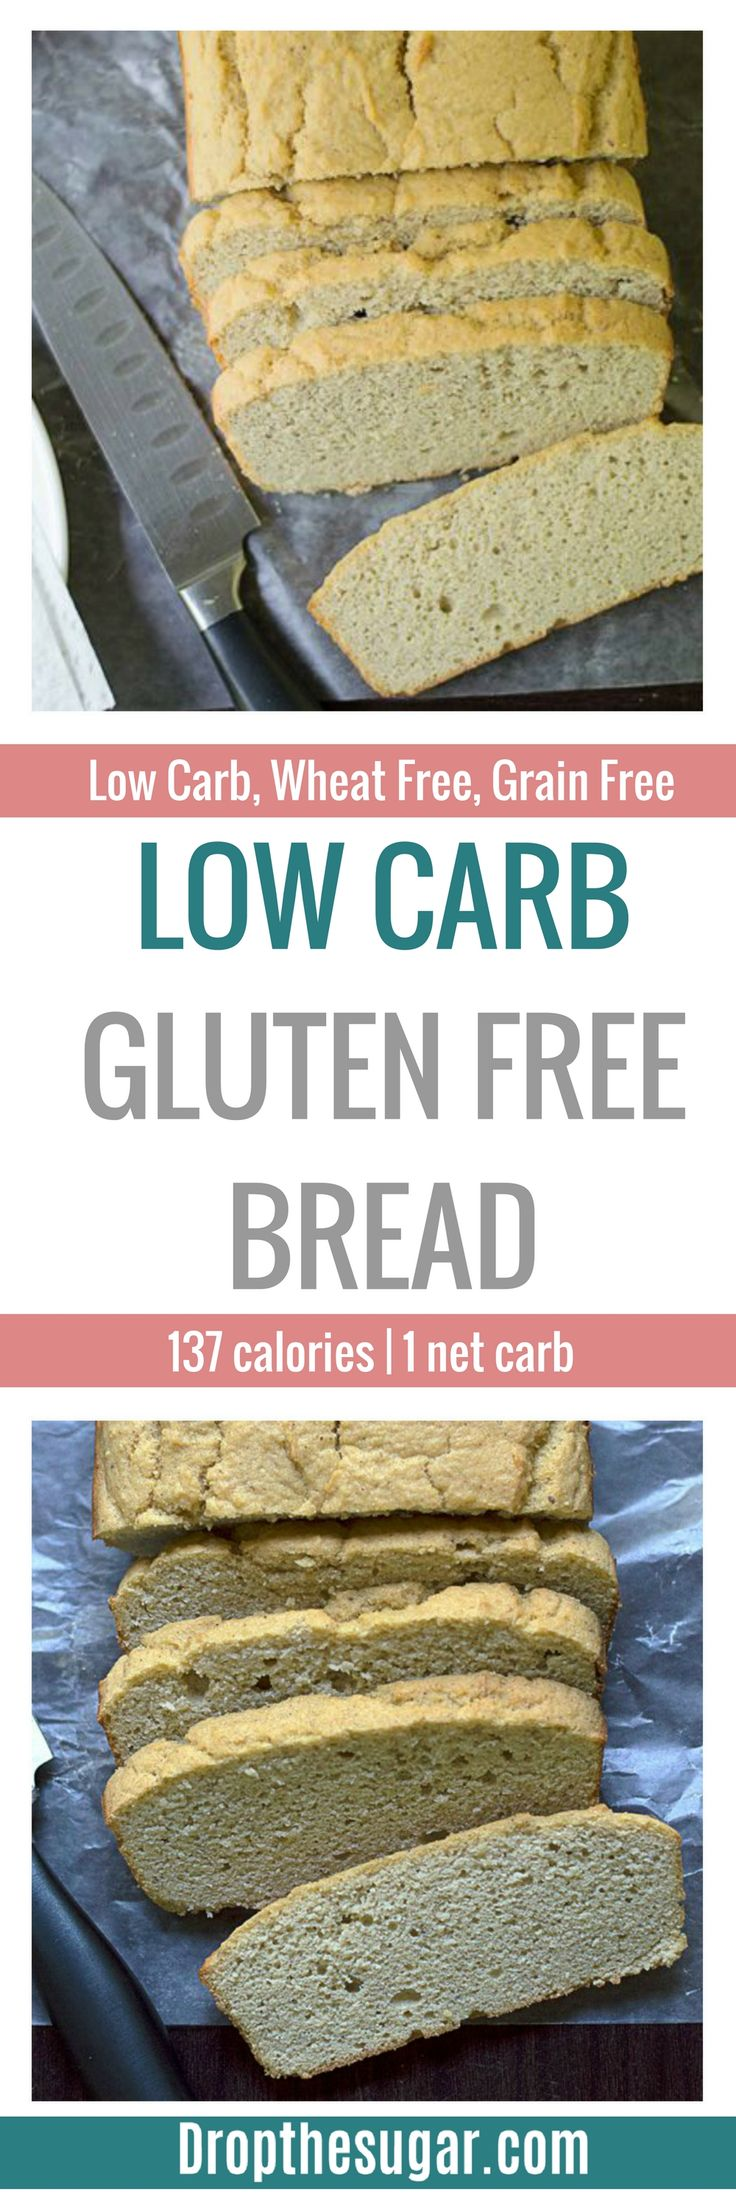 Low Carb Gluten Free Bread | a grain free bread recipe using almond flour and coconut flour. A delicious low carb bread recipe - the closest to white bread I've tasted! Pin now to make later.